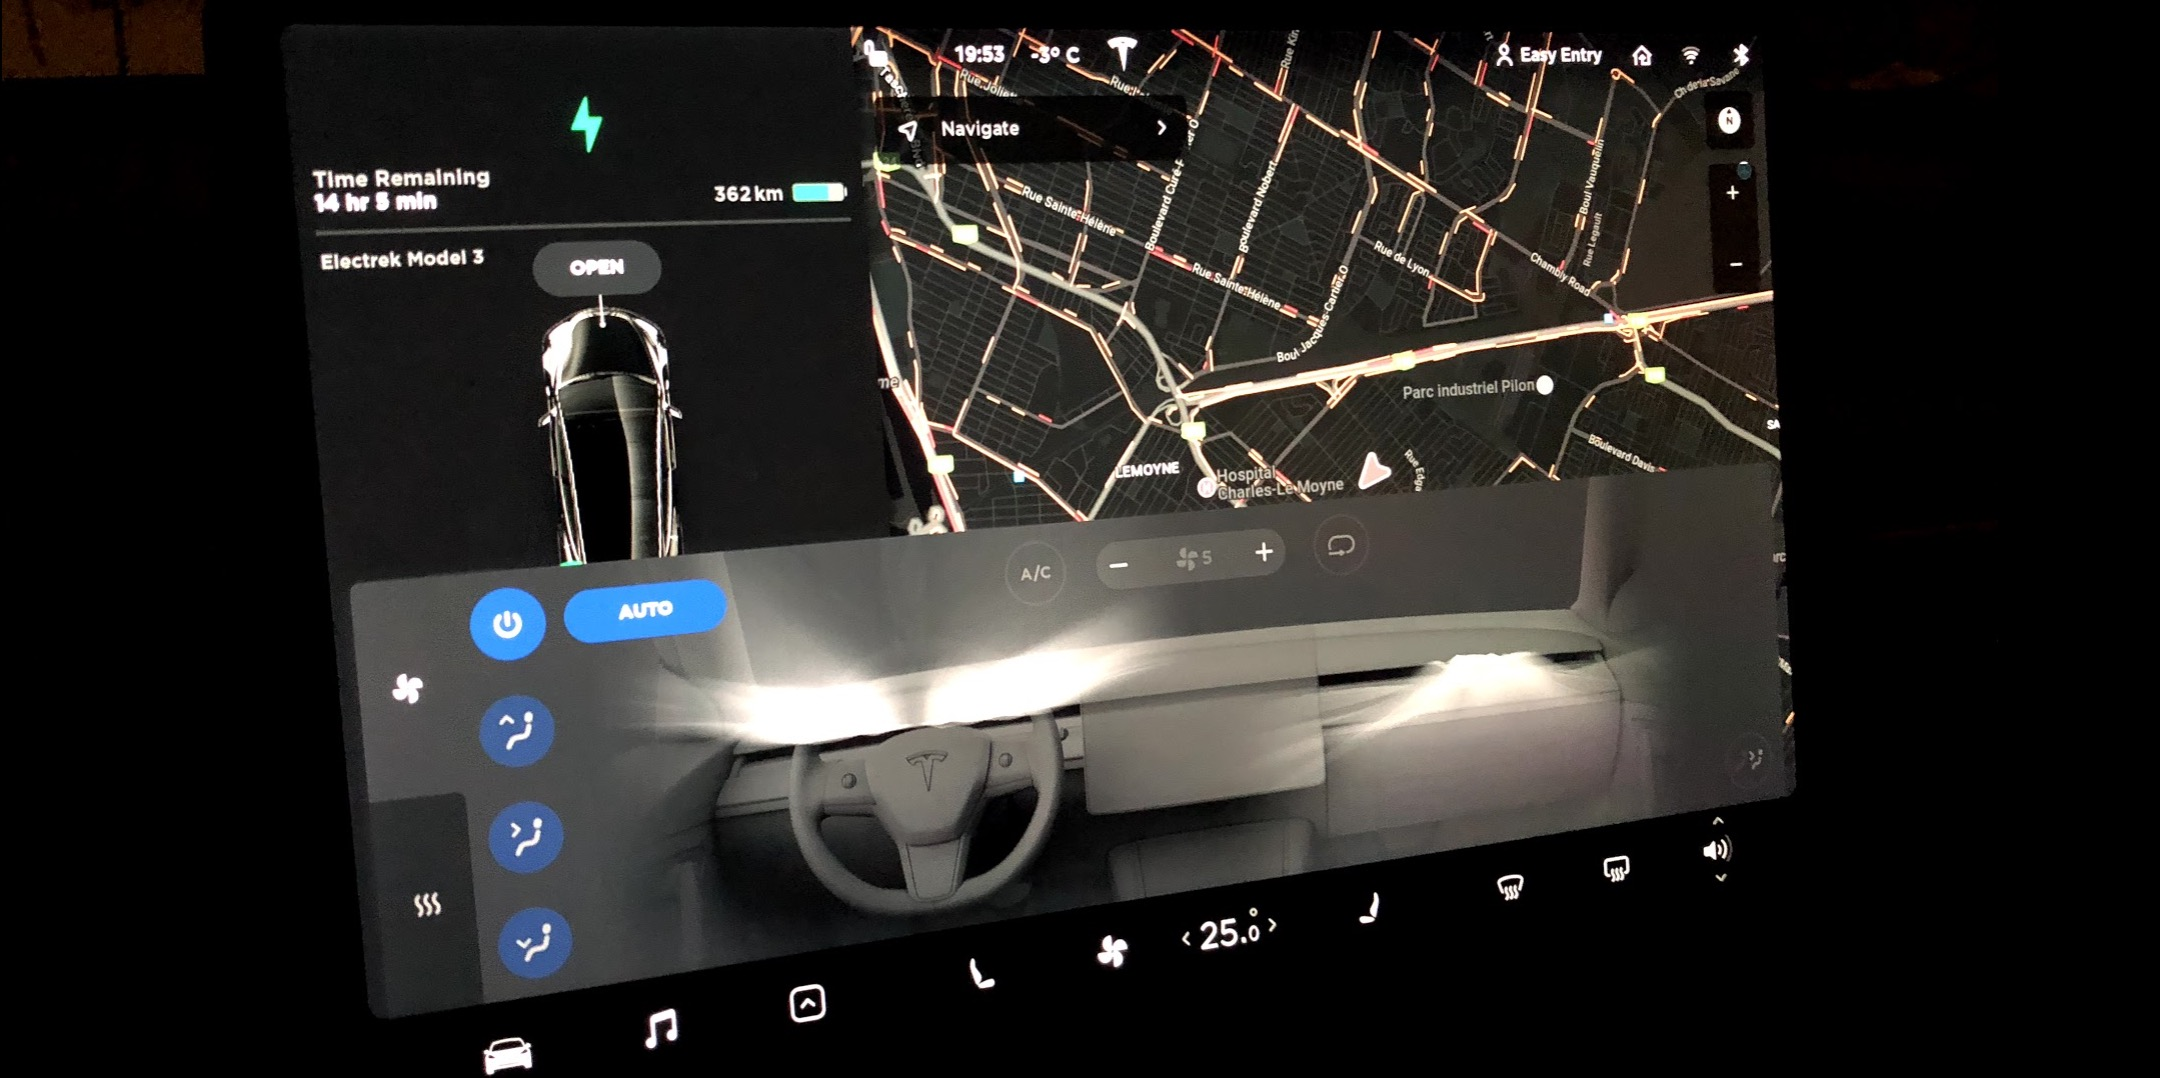 Tesla releases Model 3 software update with new climate controls, anti-theft feature, and more